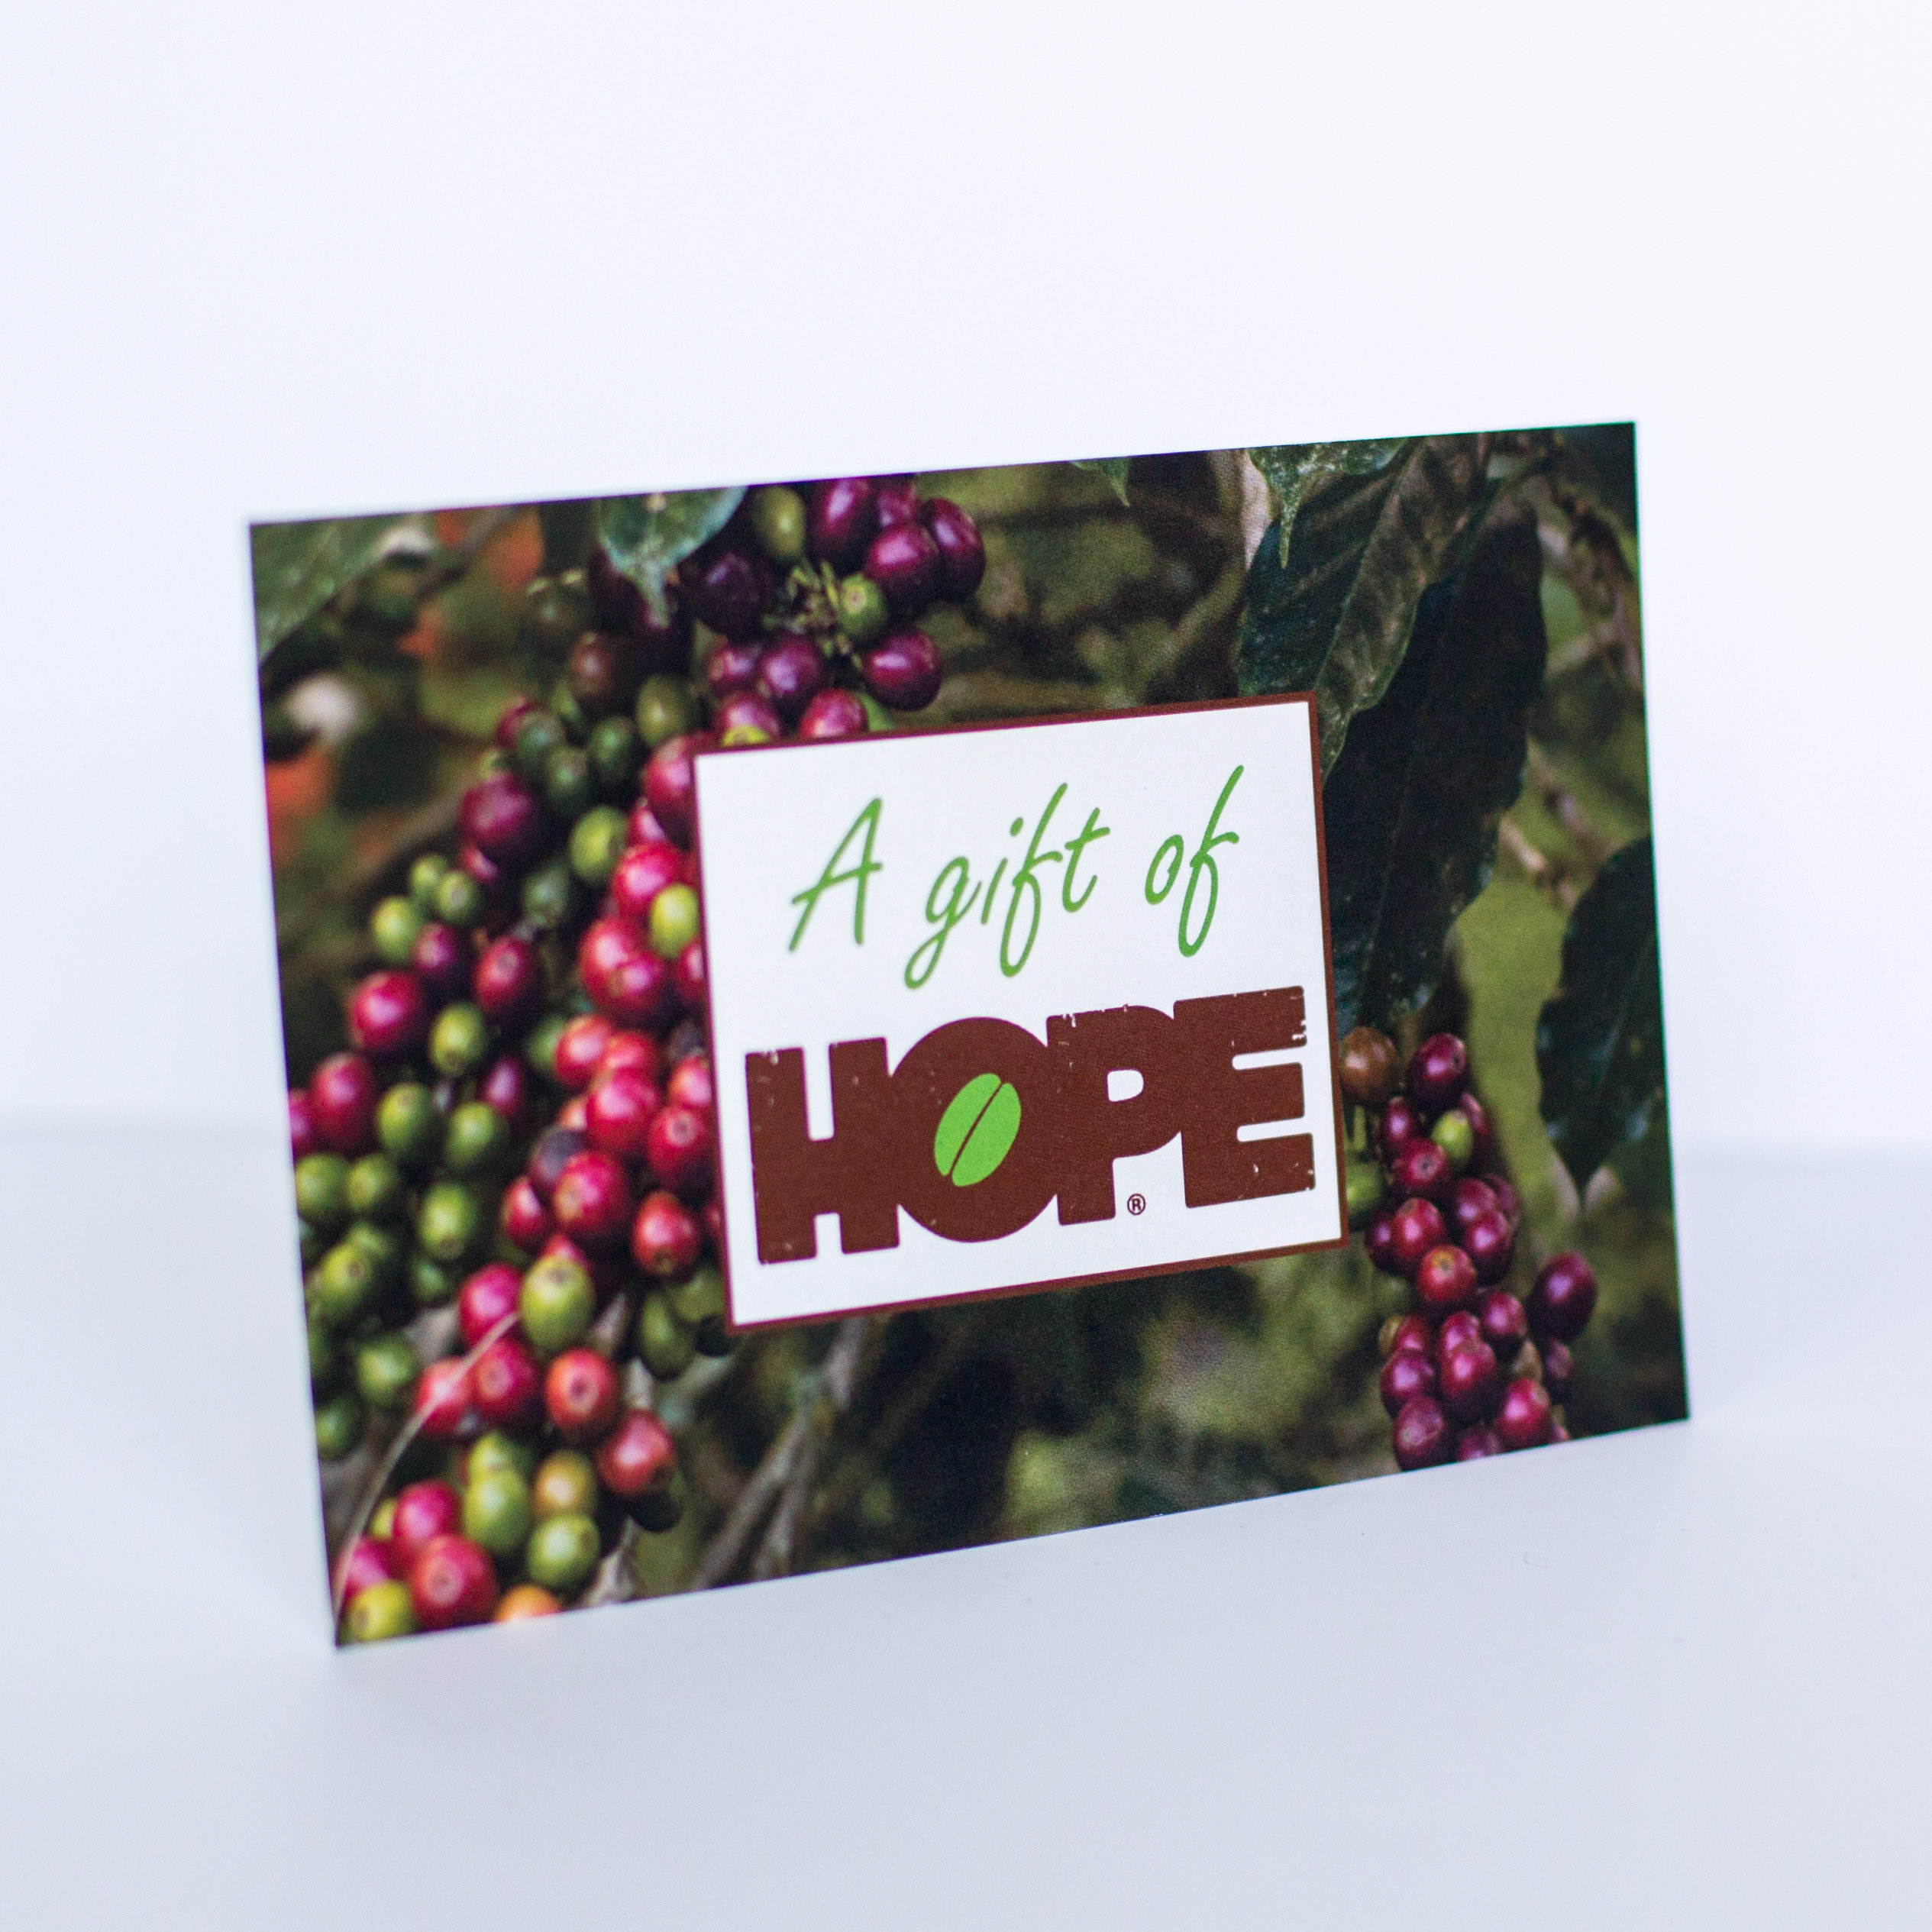 Let us know how to personalize this beautiful Christmas card for your loved one!